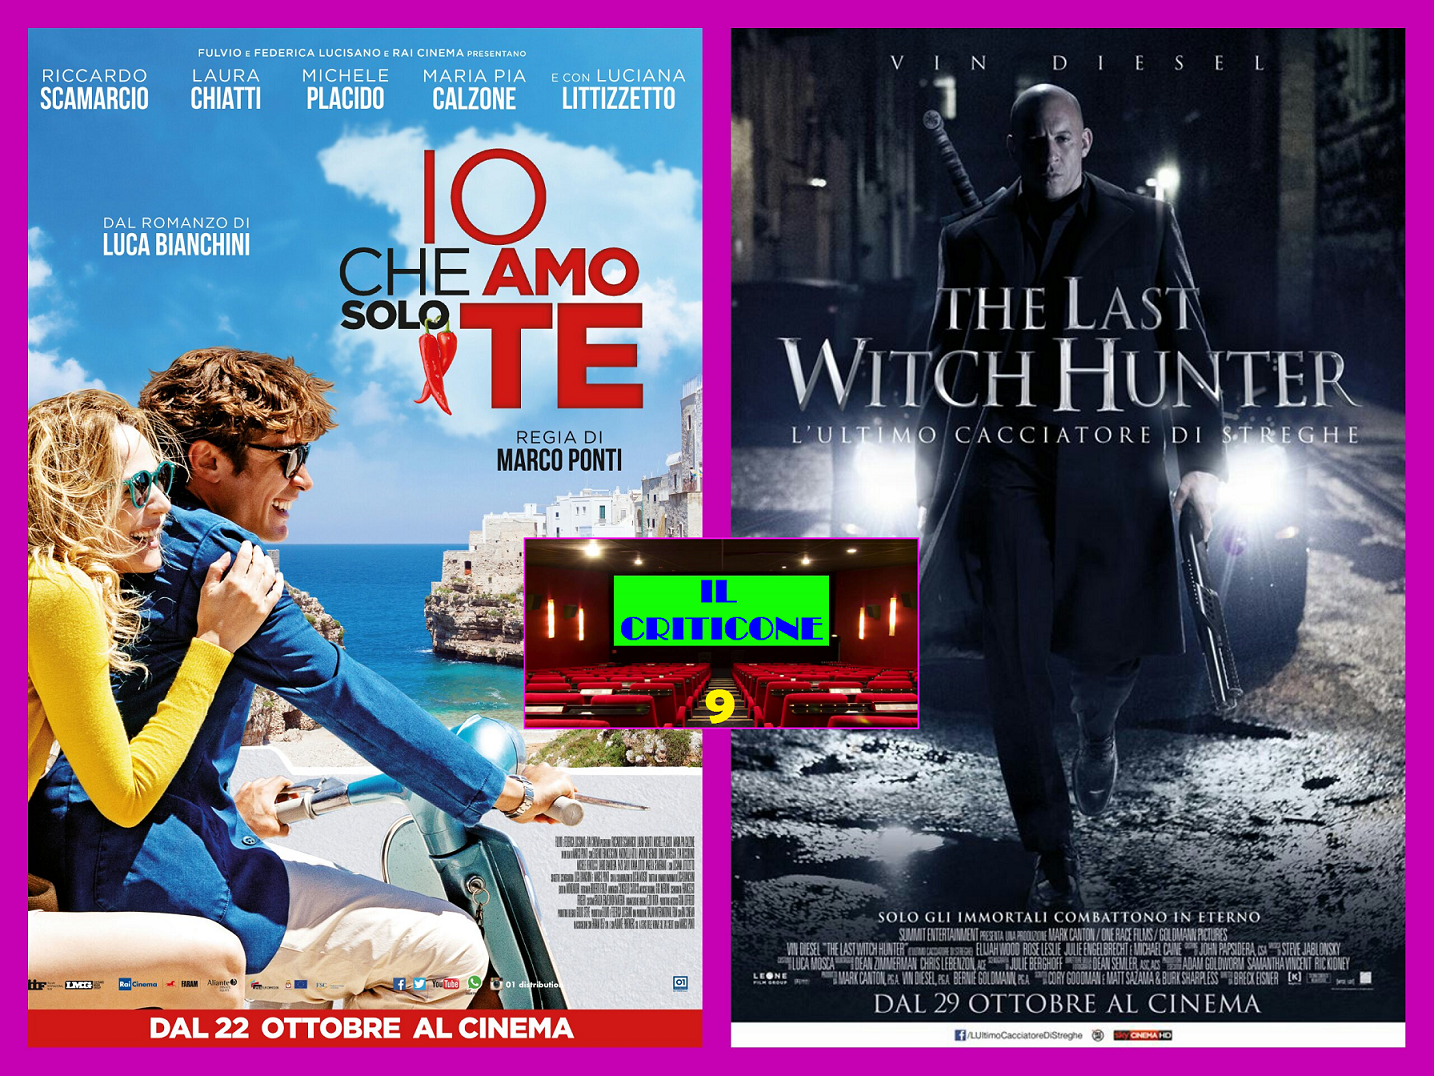 "Nuova puntata de ""Il Criticone"". Oggi parleremo del film italiano ""Io che amo solo te"" e dell'americano ""The last witch hunter"".   IO CHE AMO SOLO TE L'ennesima commedia italiana girata in […]"